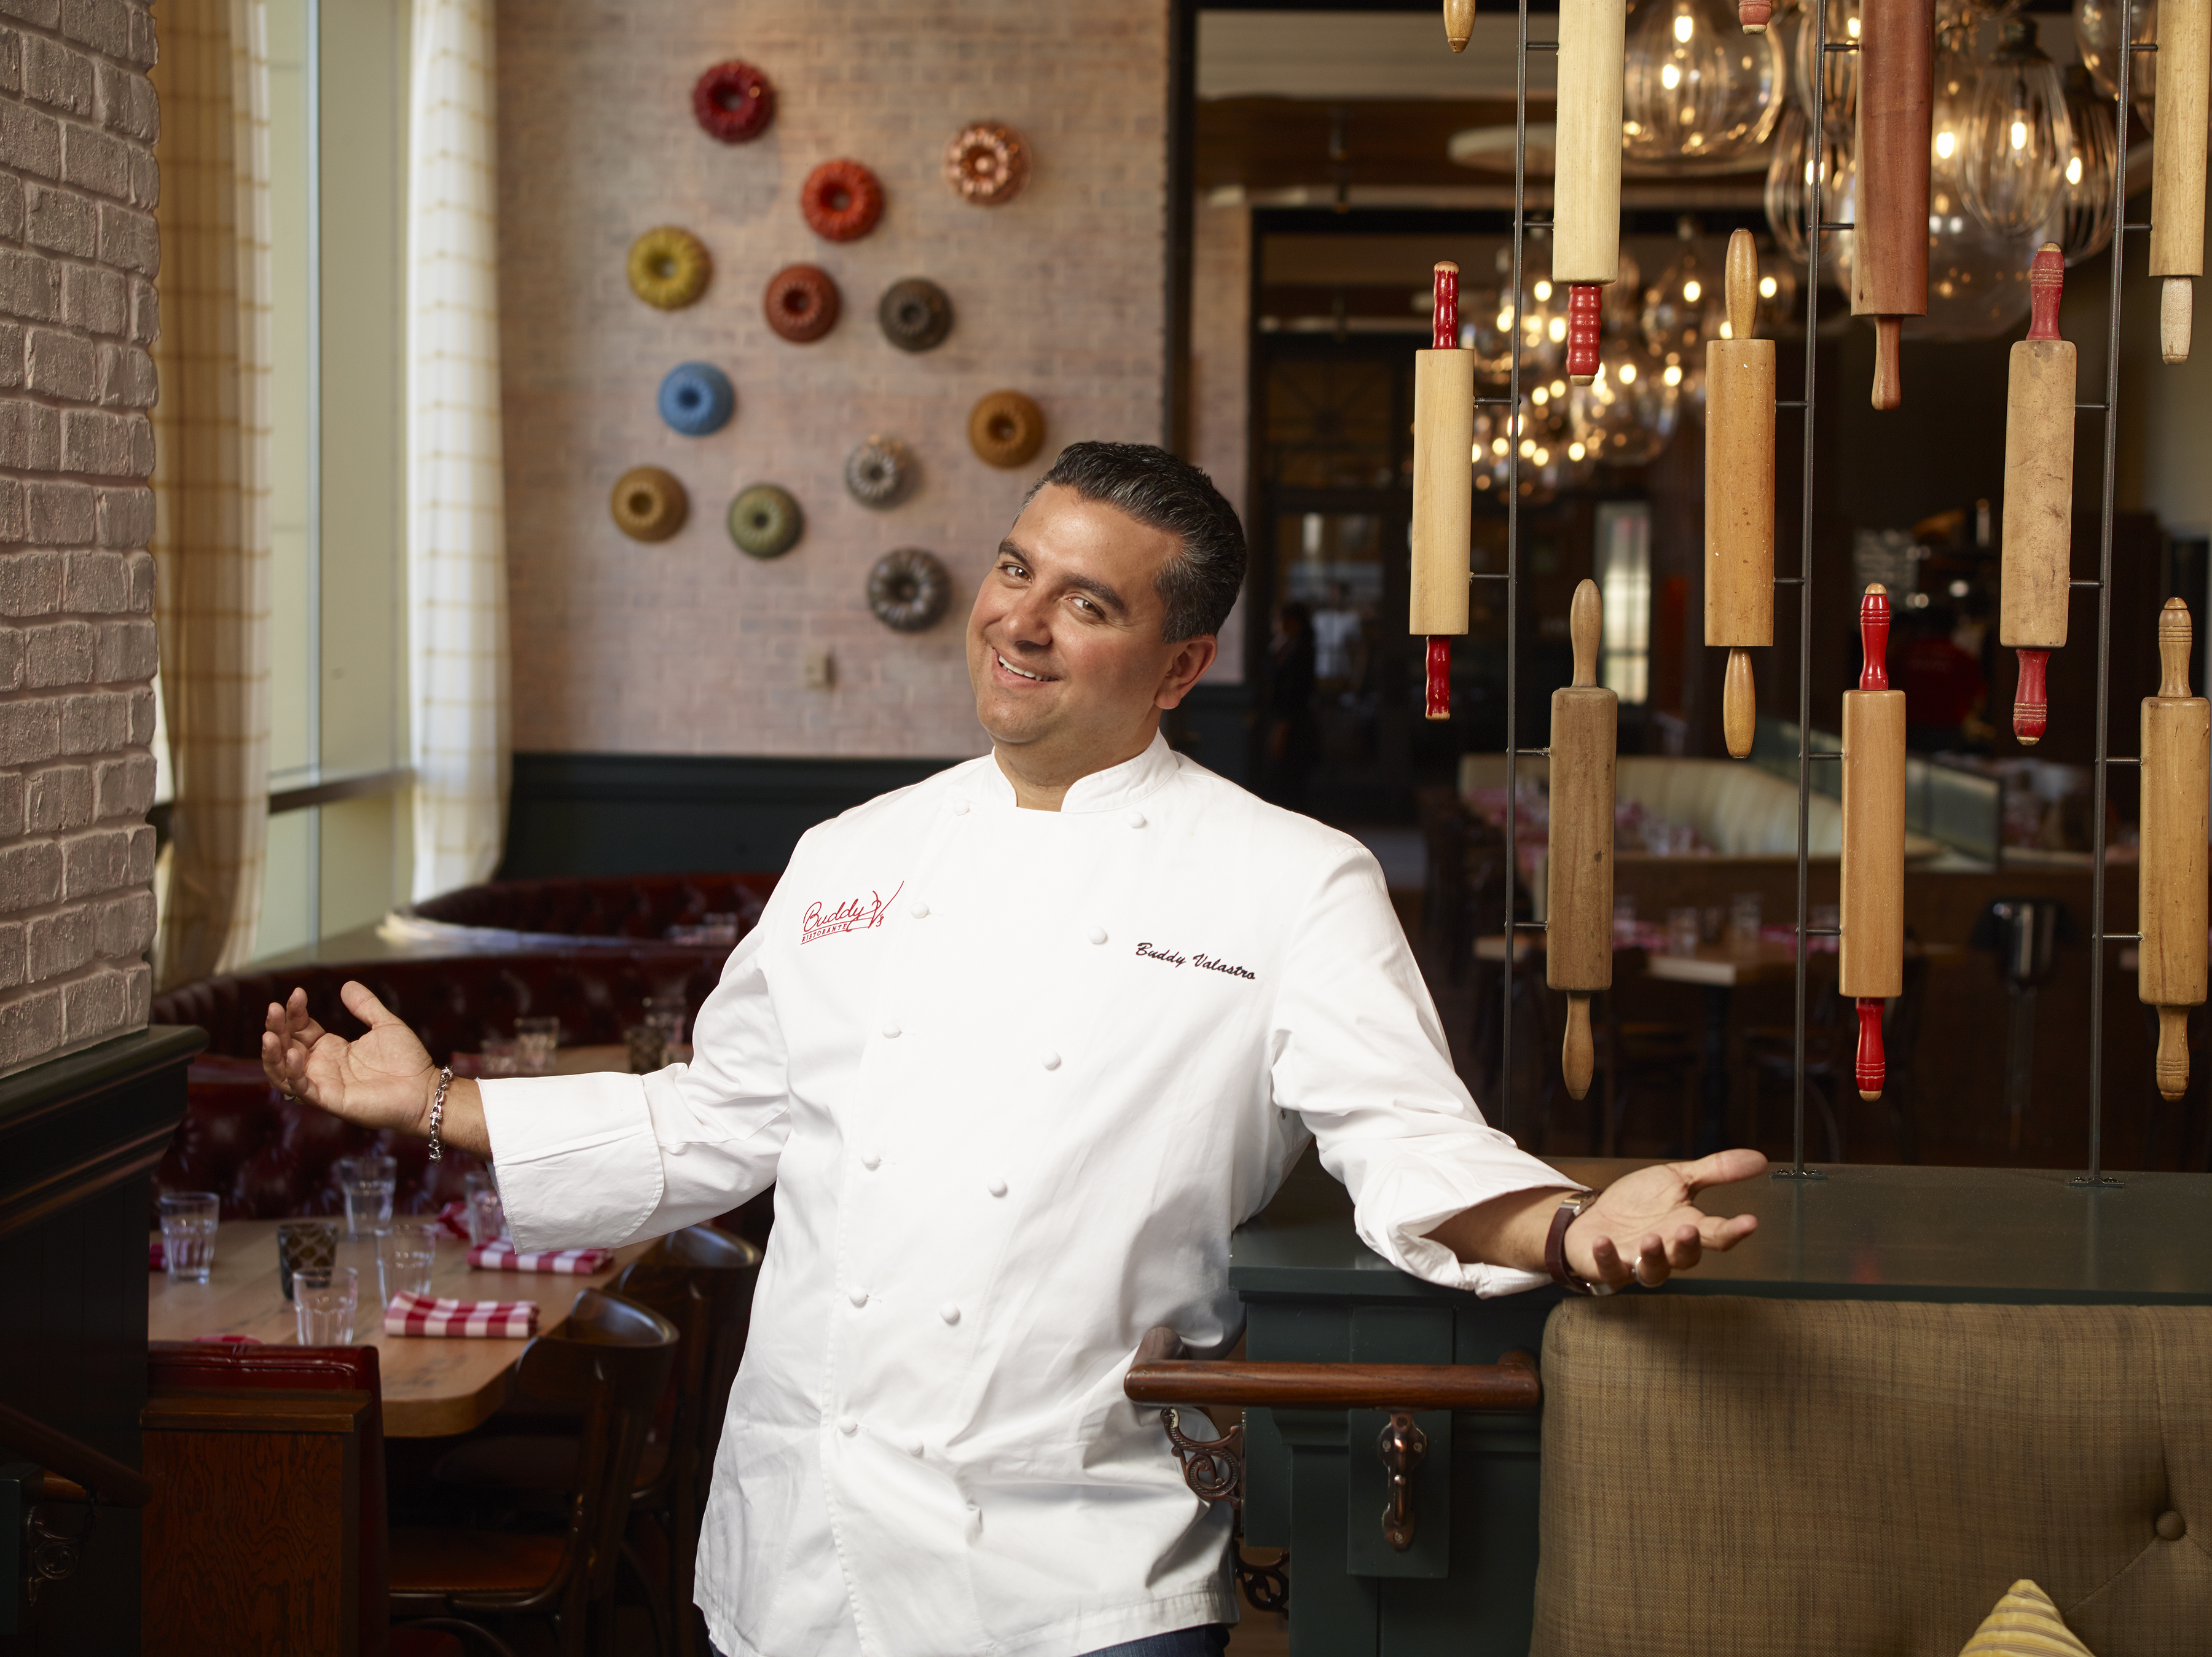 Buddy Valastro Finally Confirms Pizzacake Is Headed to the Strip